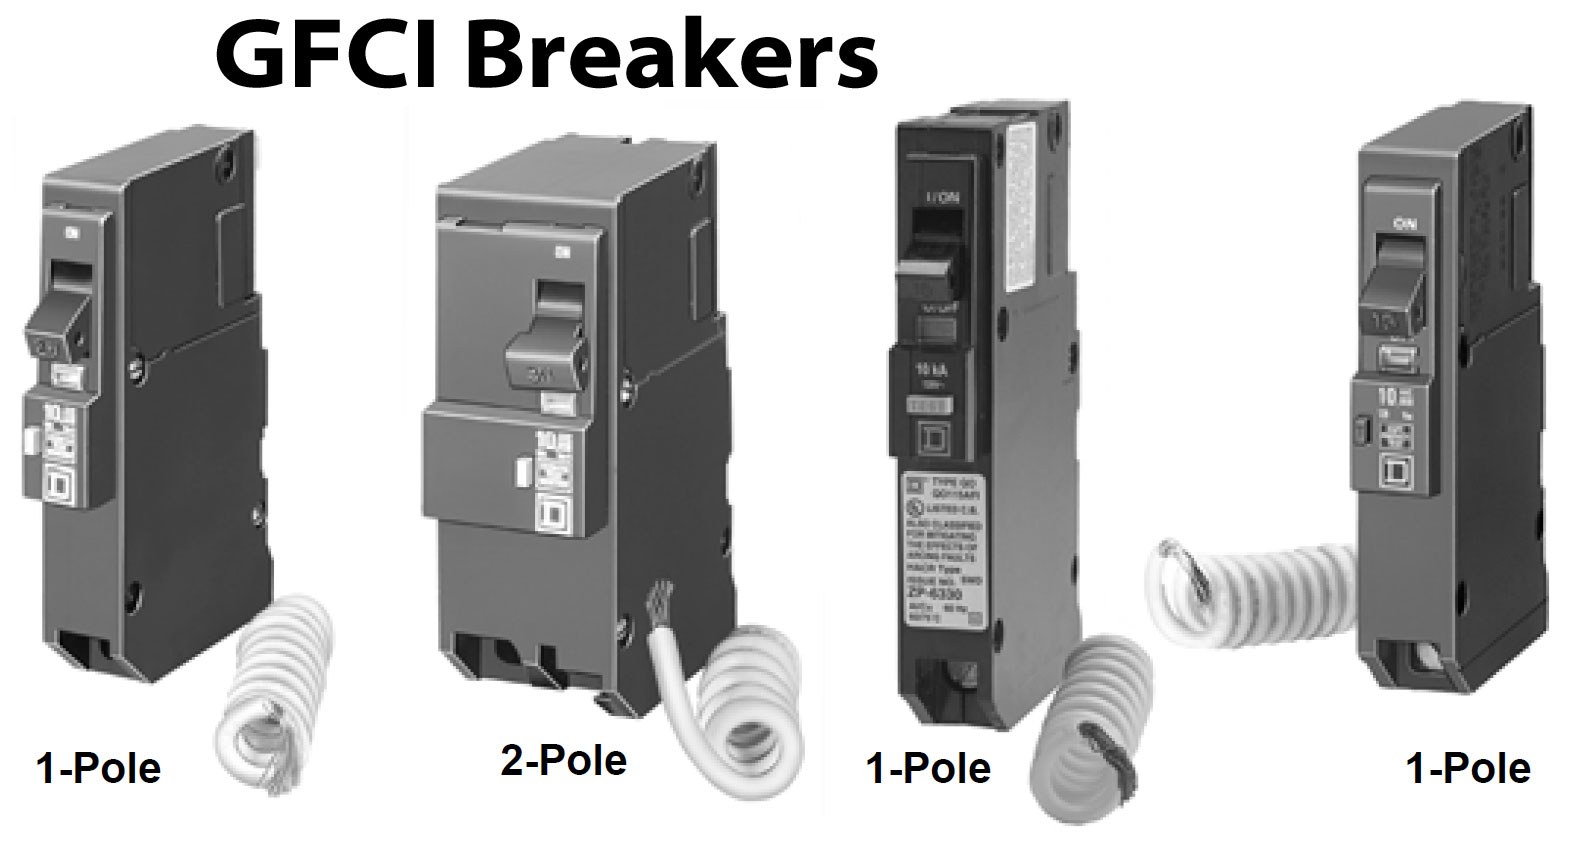 GFCI breakers 1000 how to install and troubleshoot gfci eaton gfci breaker wiring diagram at aneh.co